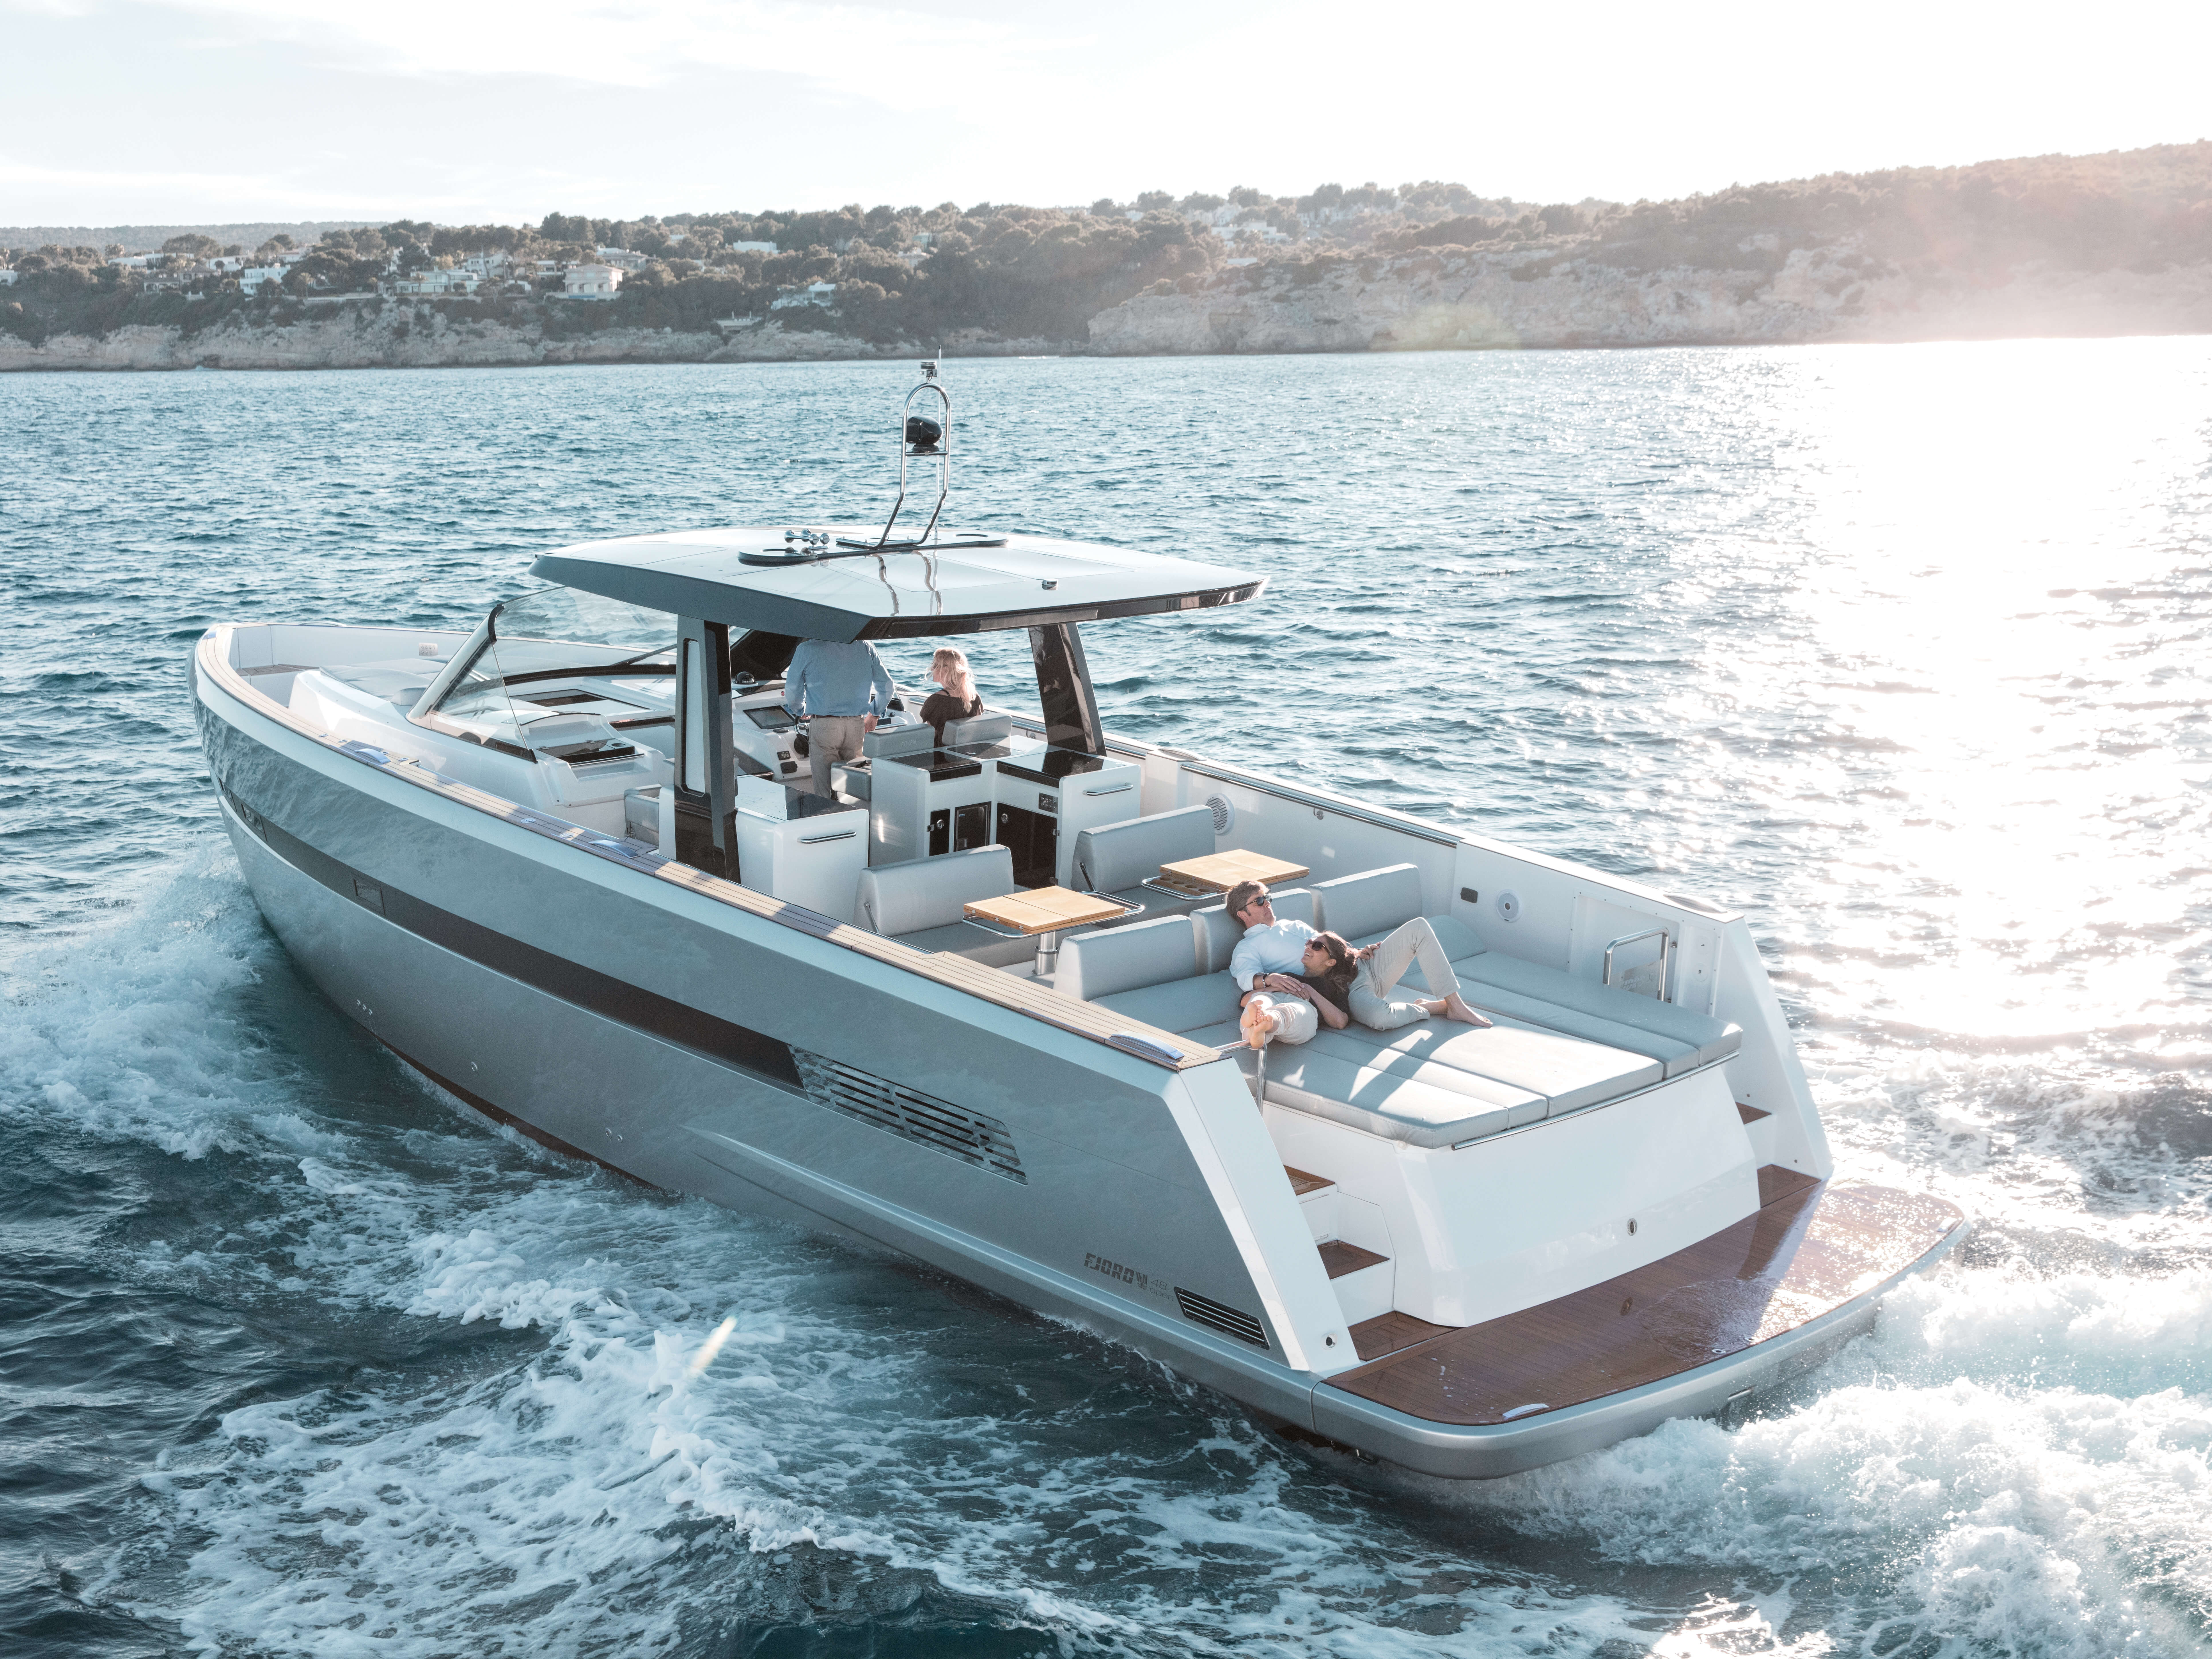 Fjord 48 open Exterior ride | painted hull, T-top with skylights, sitting area with foldable table convertible to sunbed, aft sunbed, bathing platform with teak and hydraulic lift, ladder connecting main deck and bathing platform | Fjord